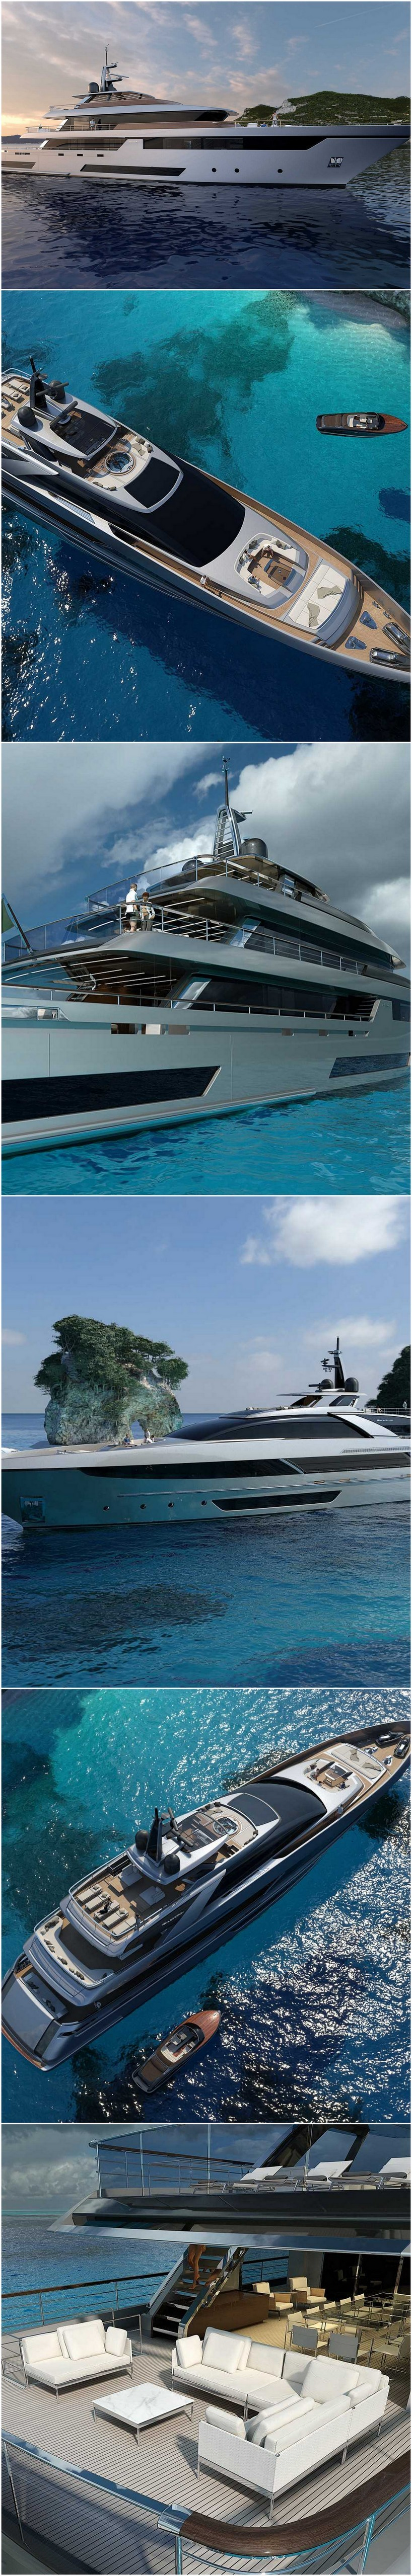 Riva's Two 164' Superyacht Designs Offer Contemporary & Traditional Styles